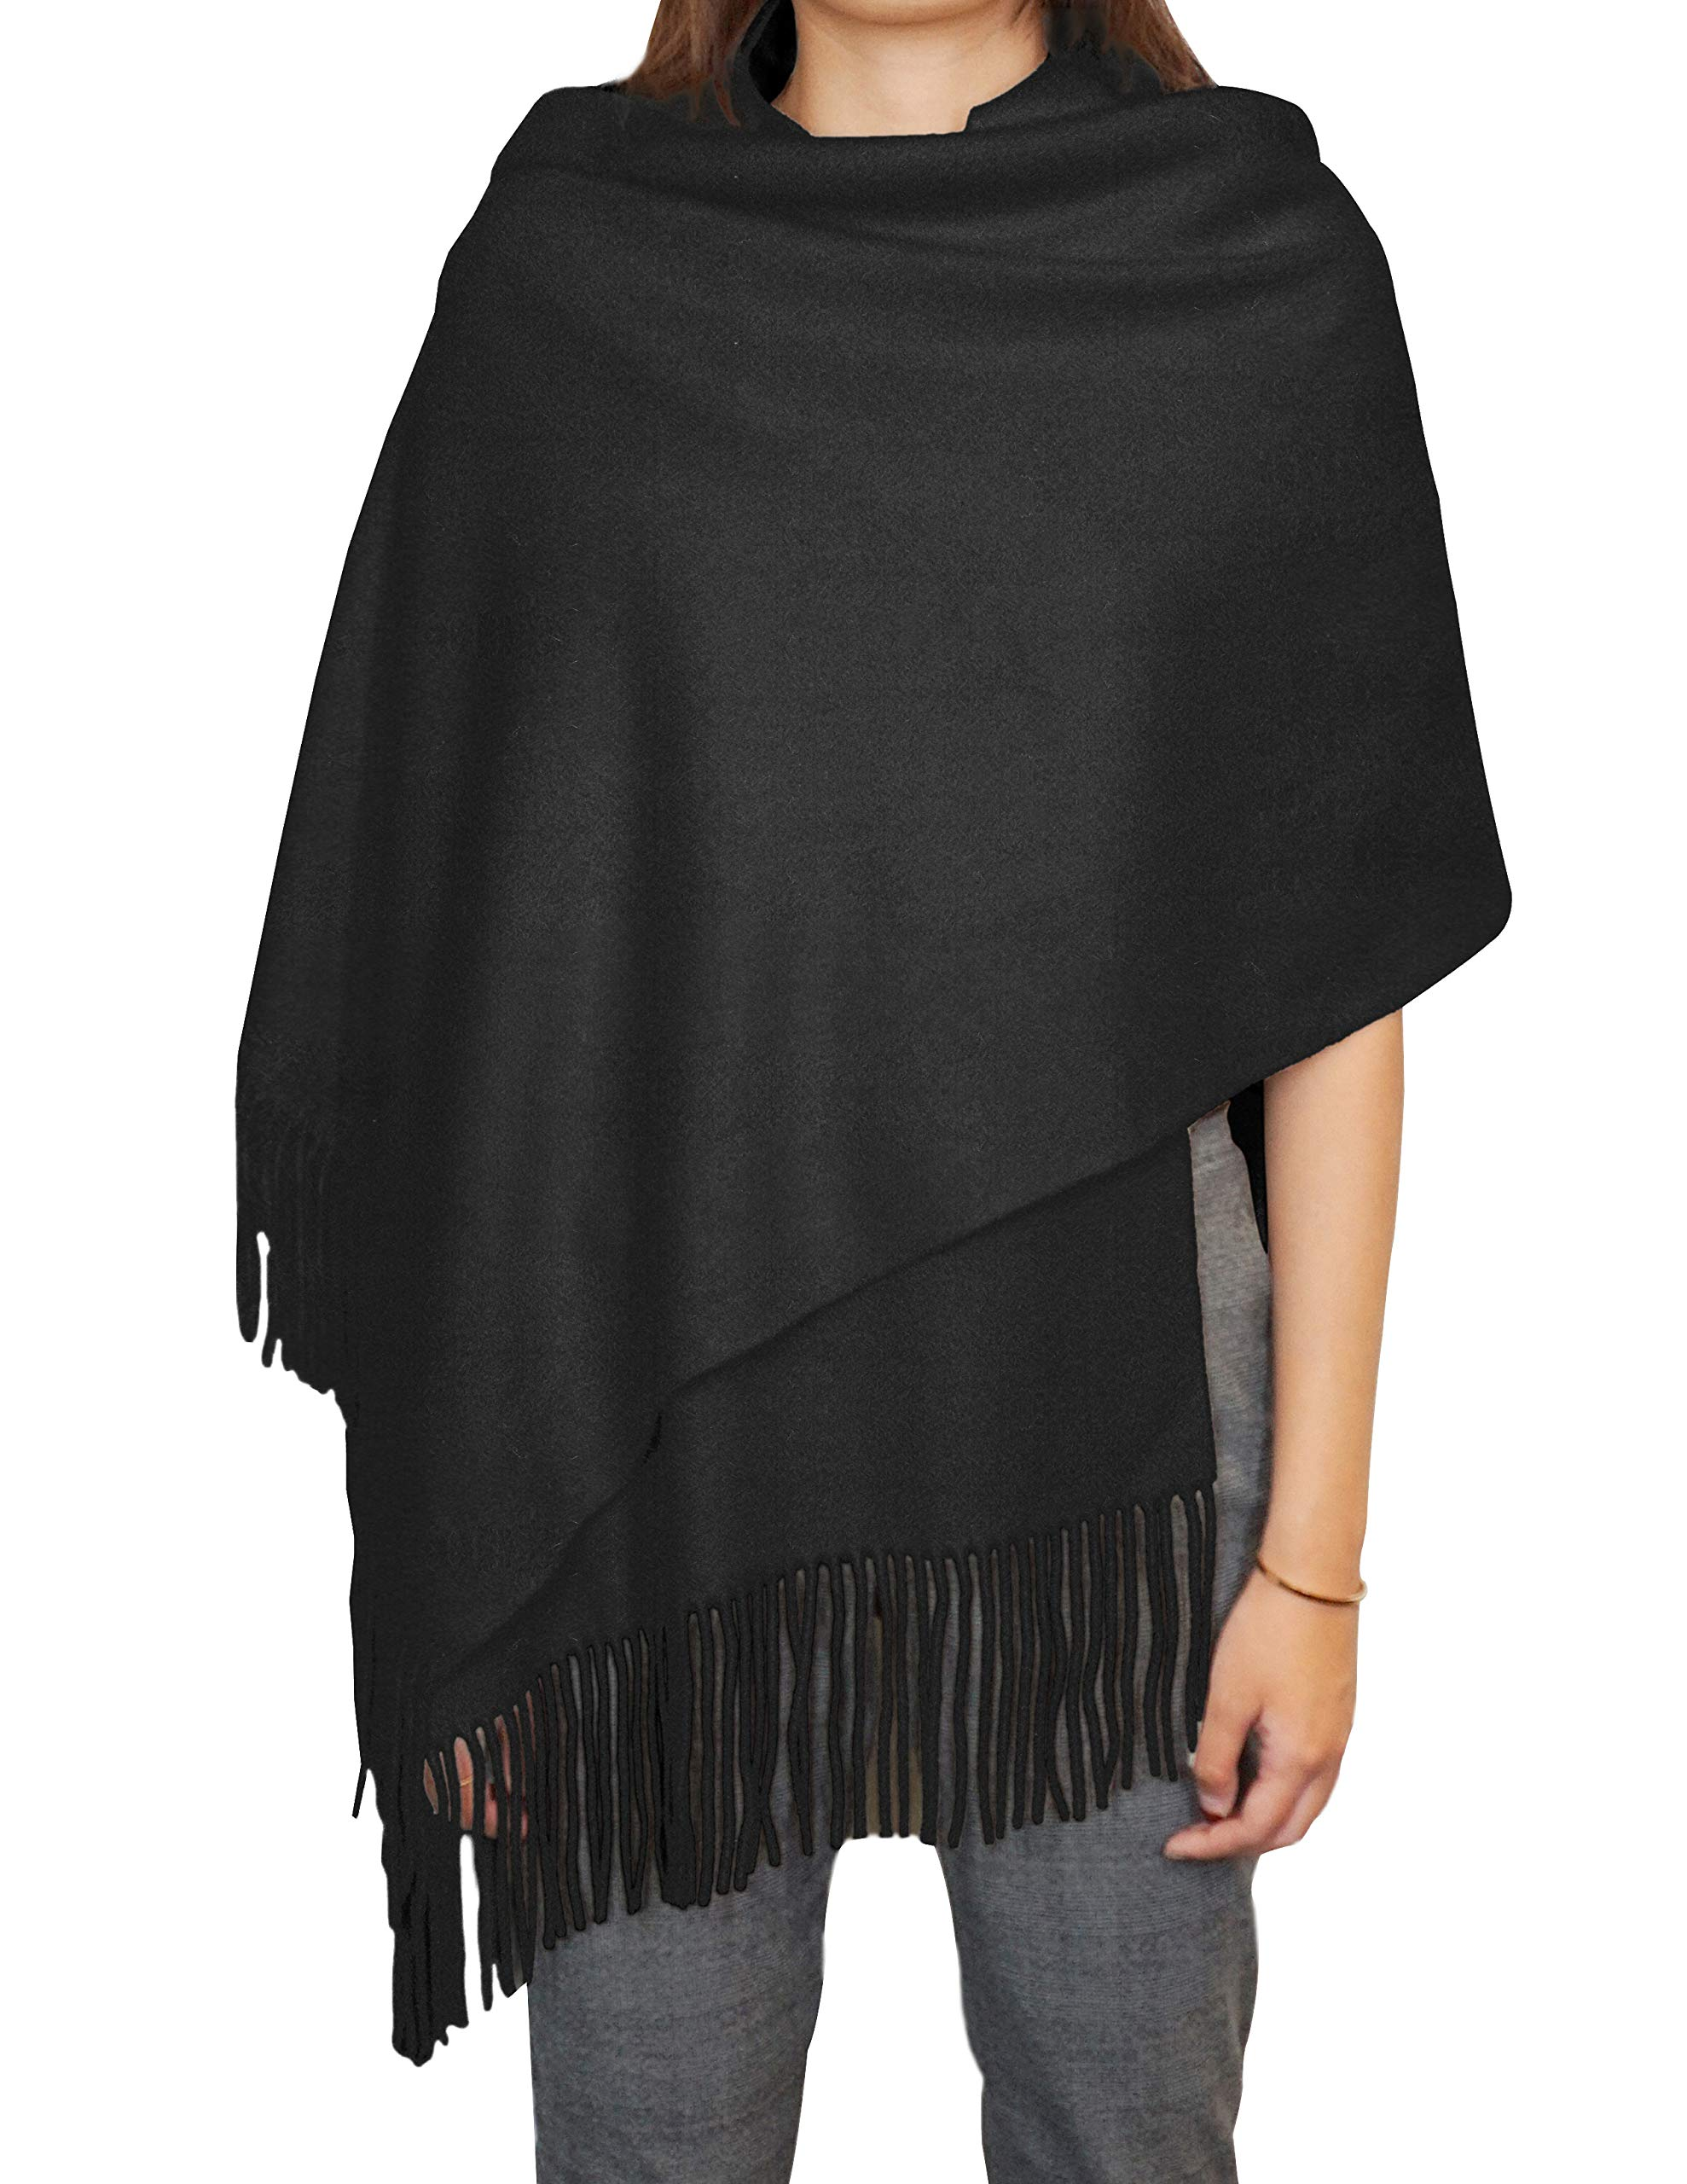 State Cashmere Unisex 100% Cashmere Fringe Solid Color Shawl Wrap Scarf 28'' x 76'' + 4'' x 2 by State Cashmere